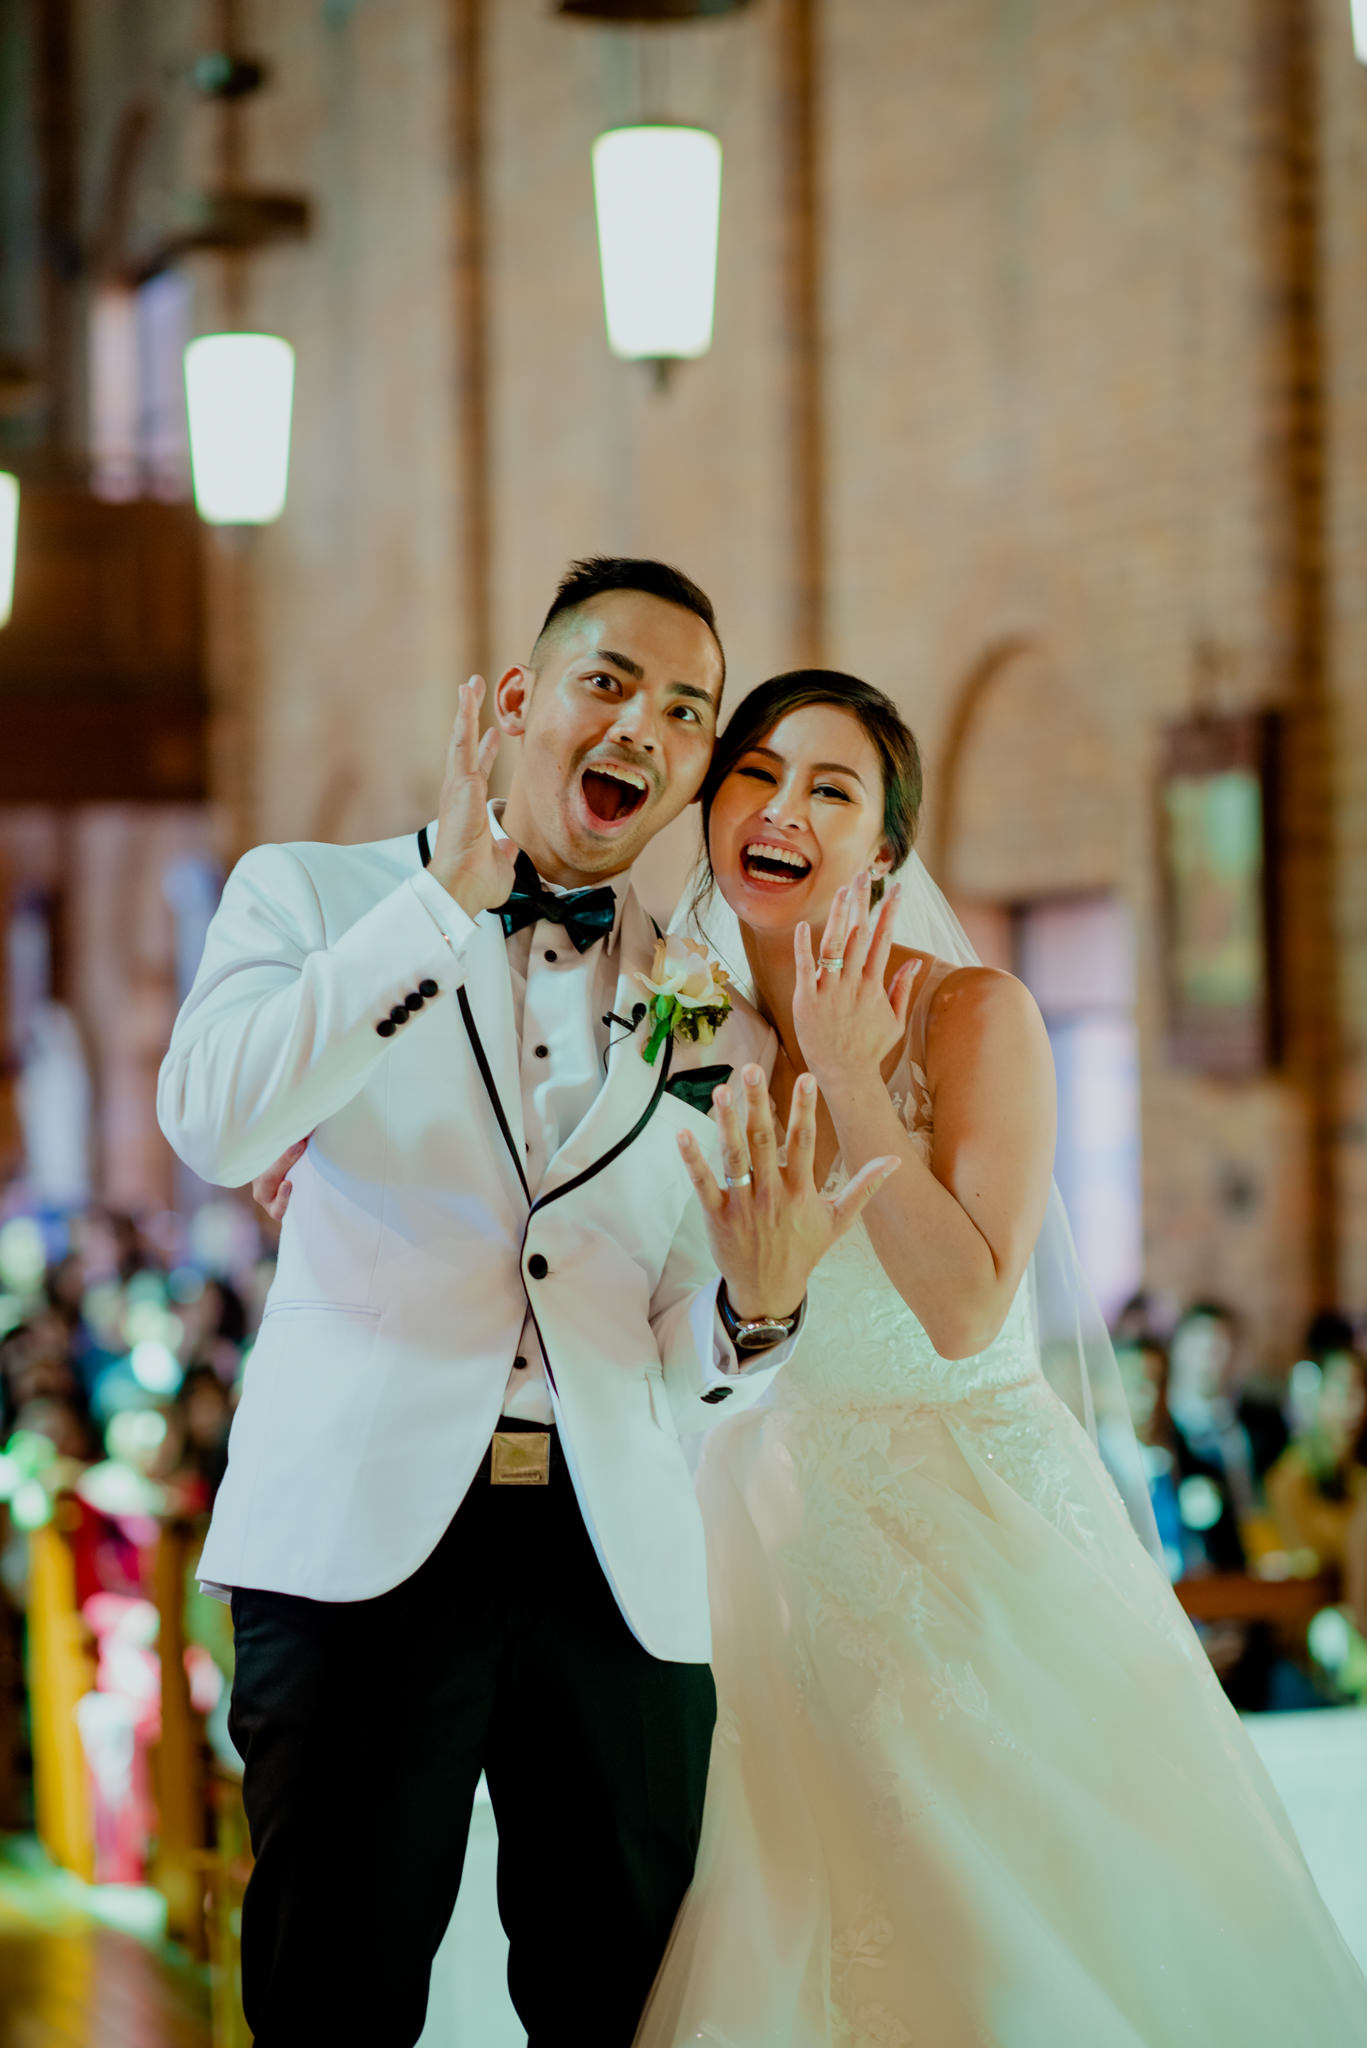 A bride and groom laugh and look shocked as they show off their wedding rings